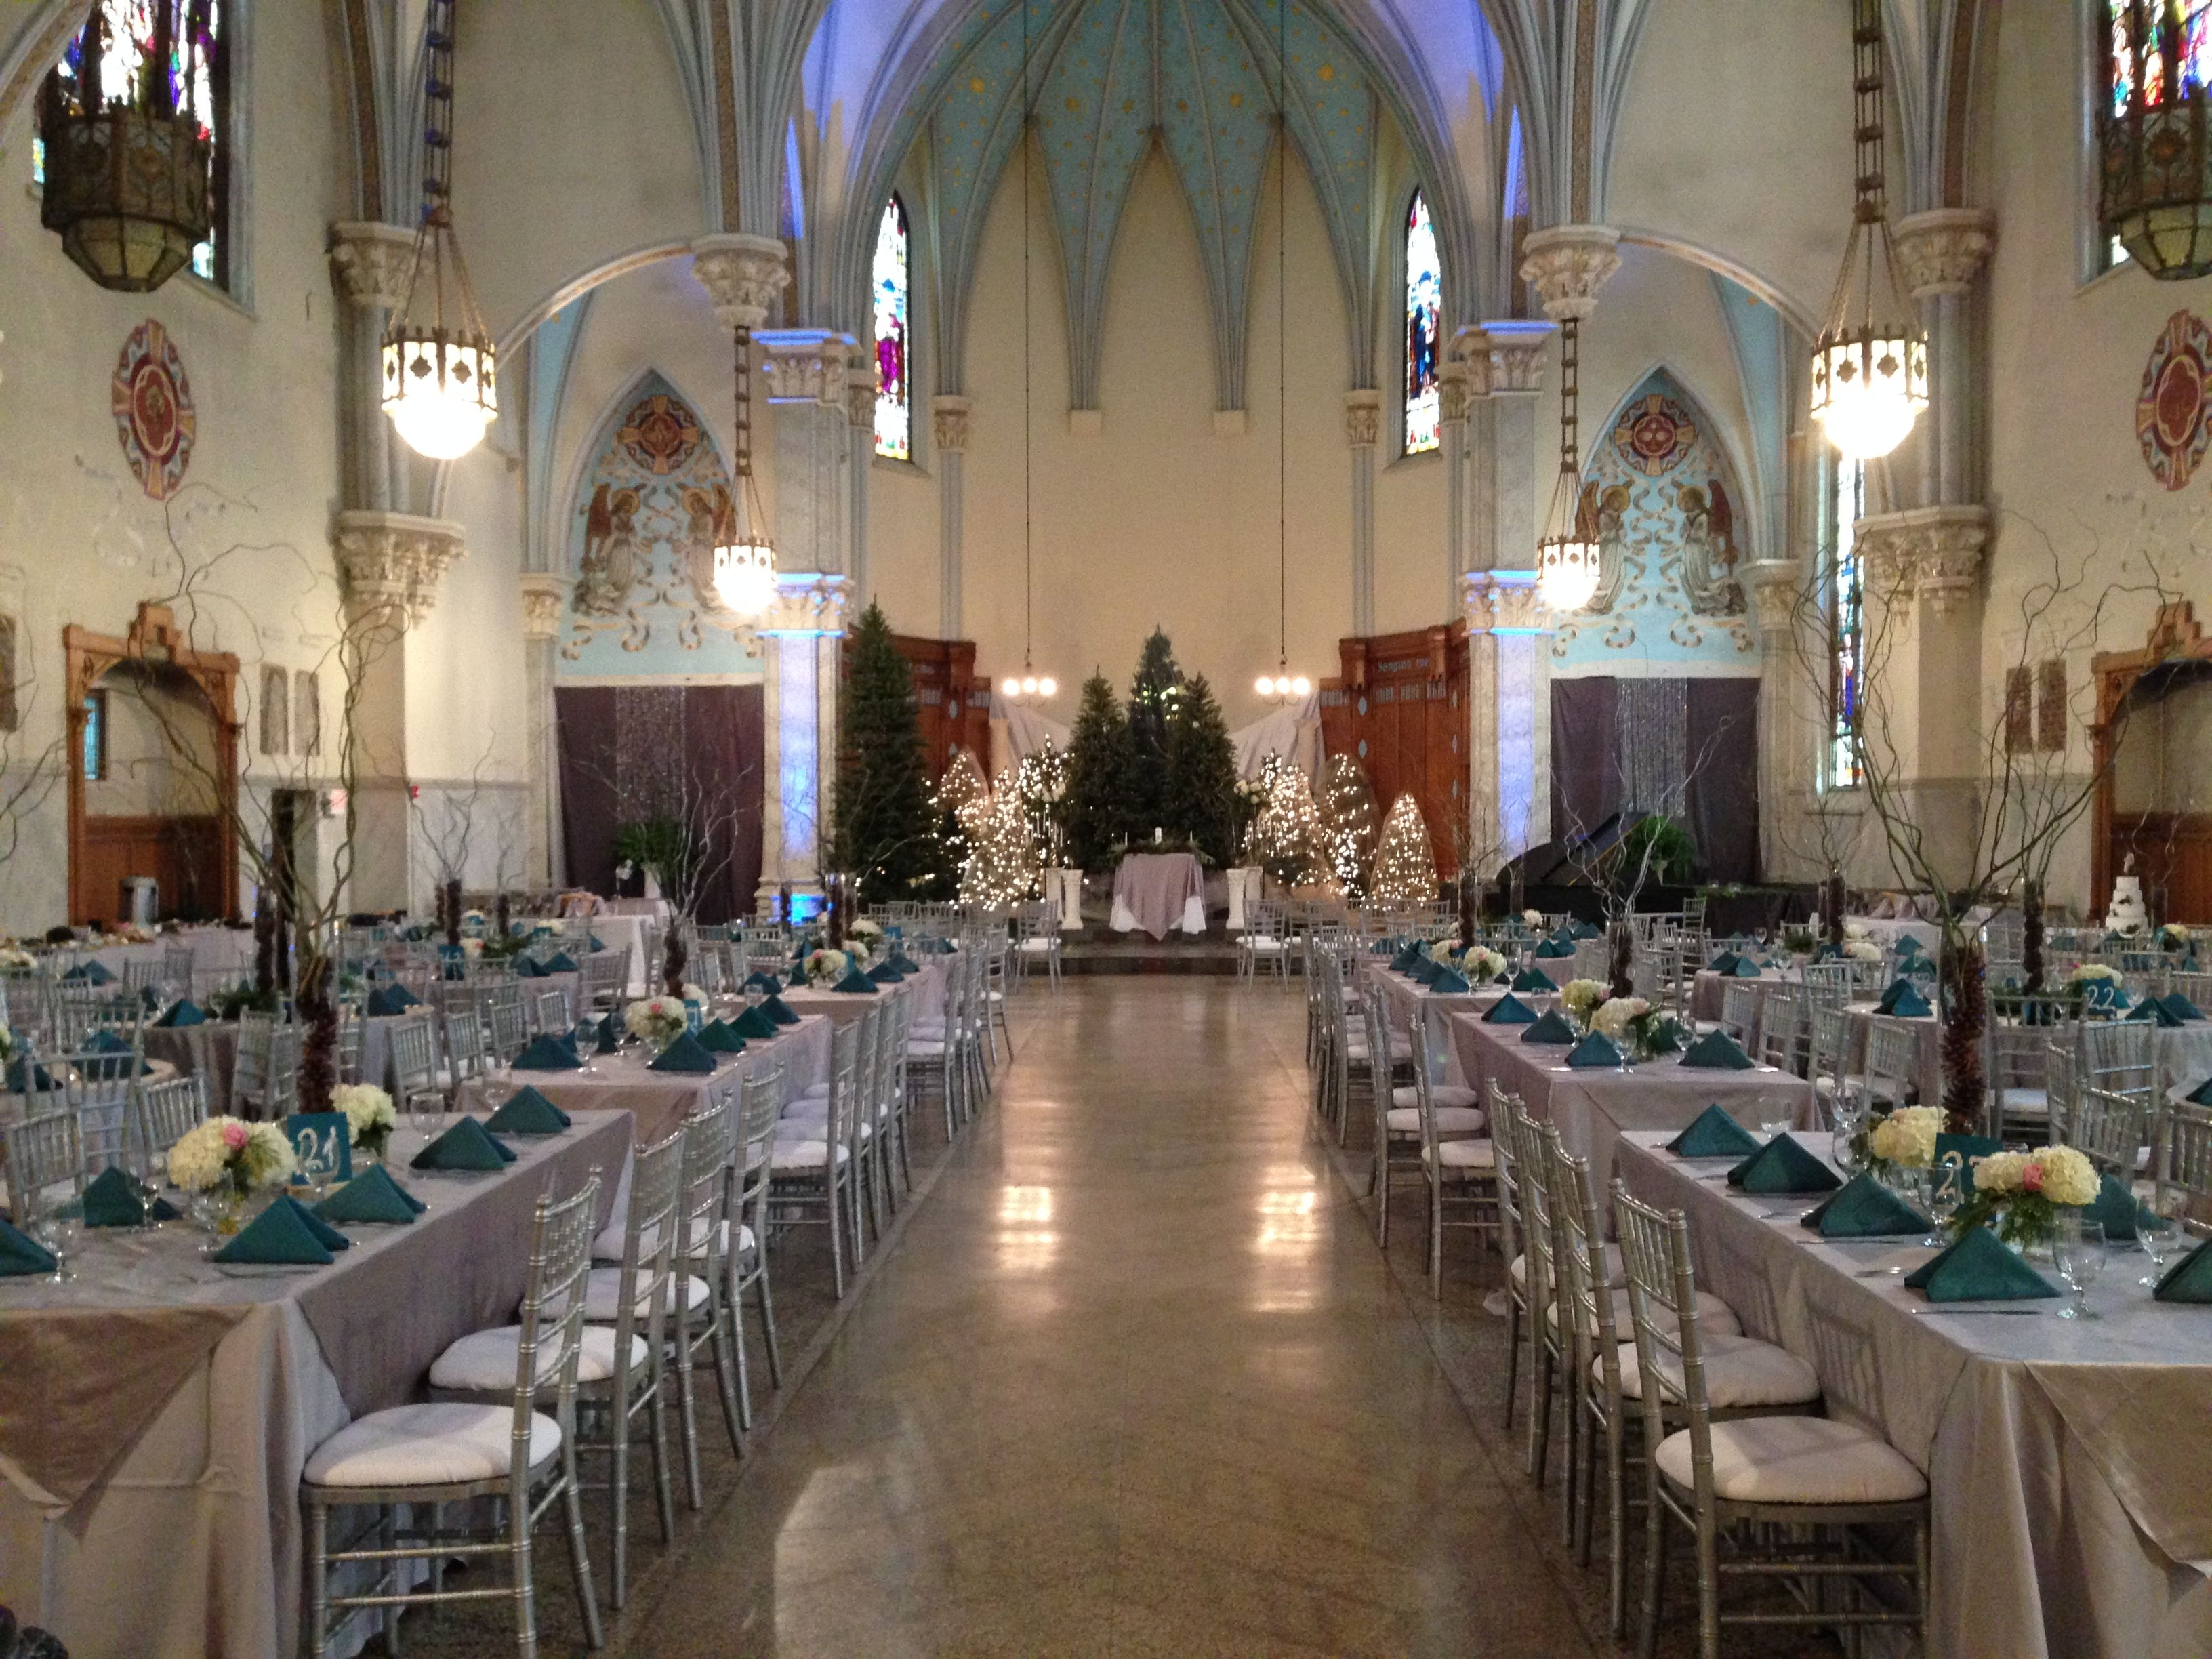 Winter Wedding The Grand Halle On Broad Street Cambria City Cultural District Johnstown Wedding Cultural District Celebrity Weddings